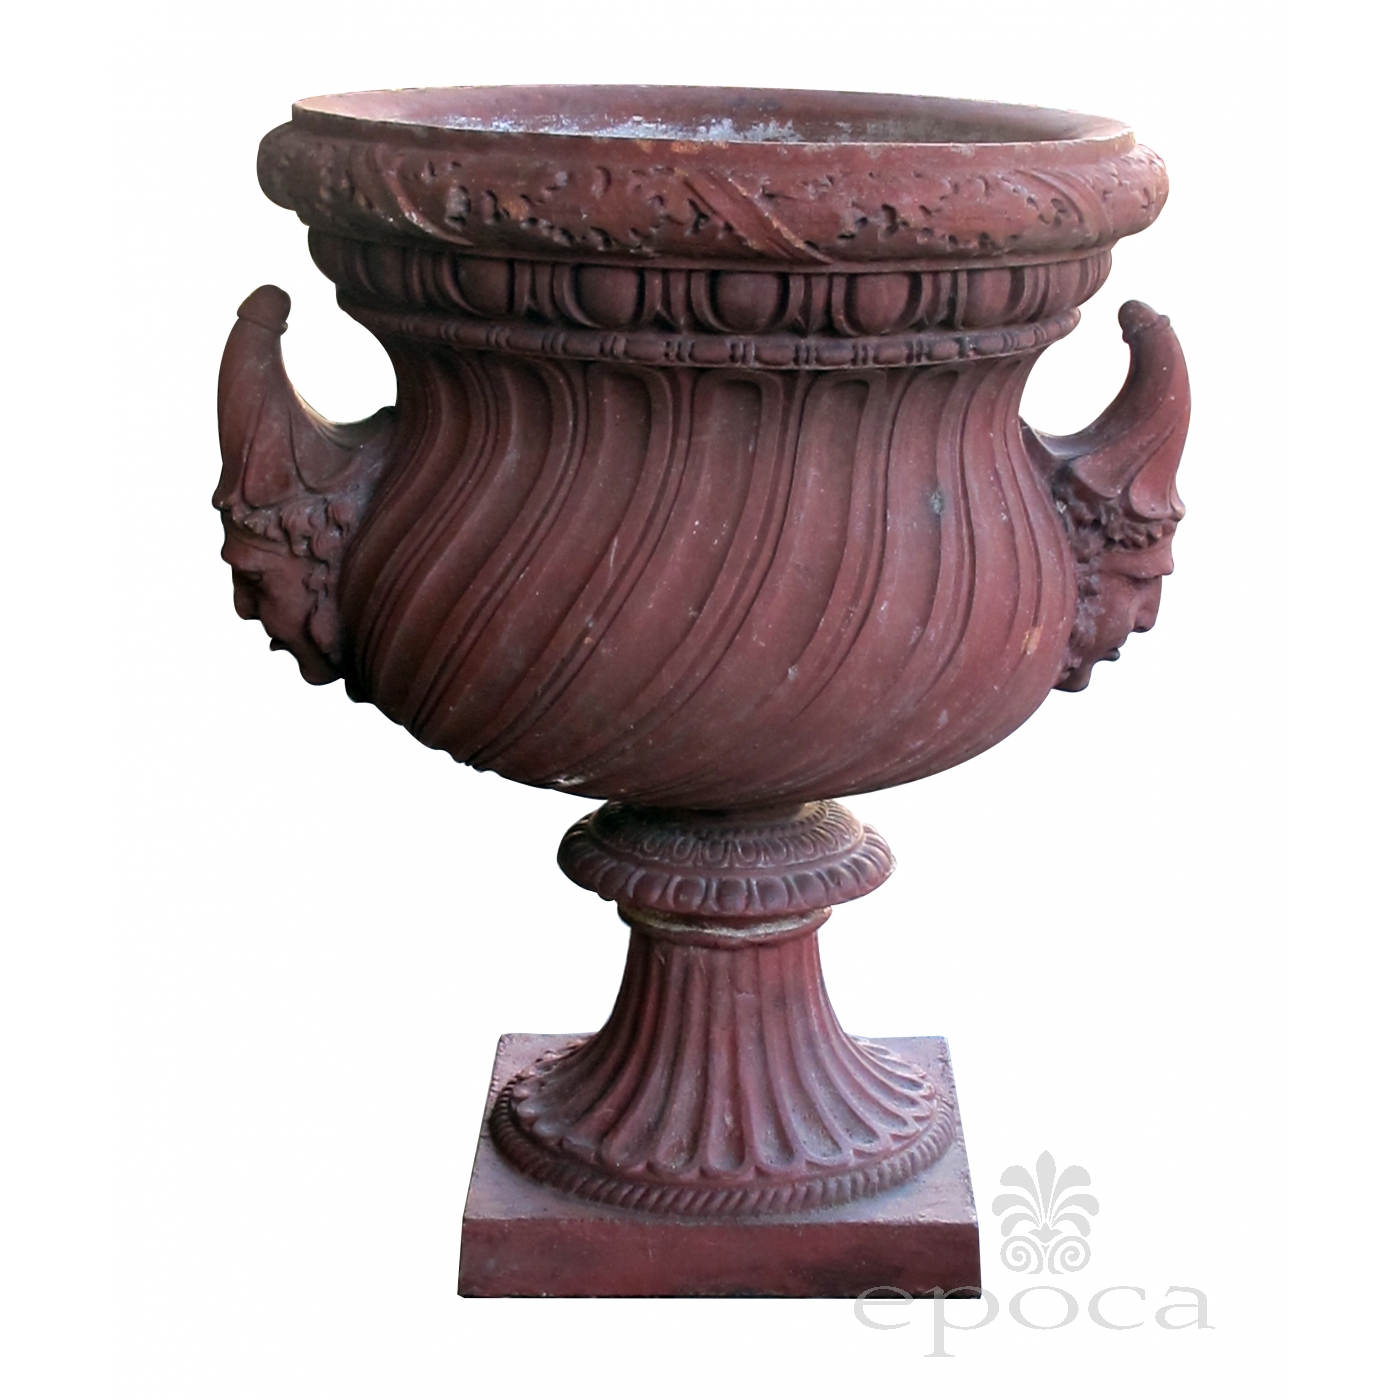 a stunning english neoclical style terra cotta garden urn with ... on garden with birdbath, garden with potted plants, garden with arches, garden with pots, garden with sculptures,